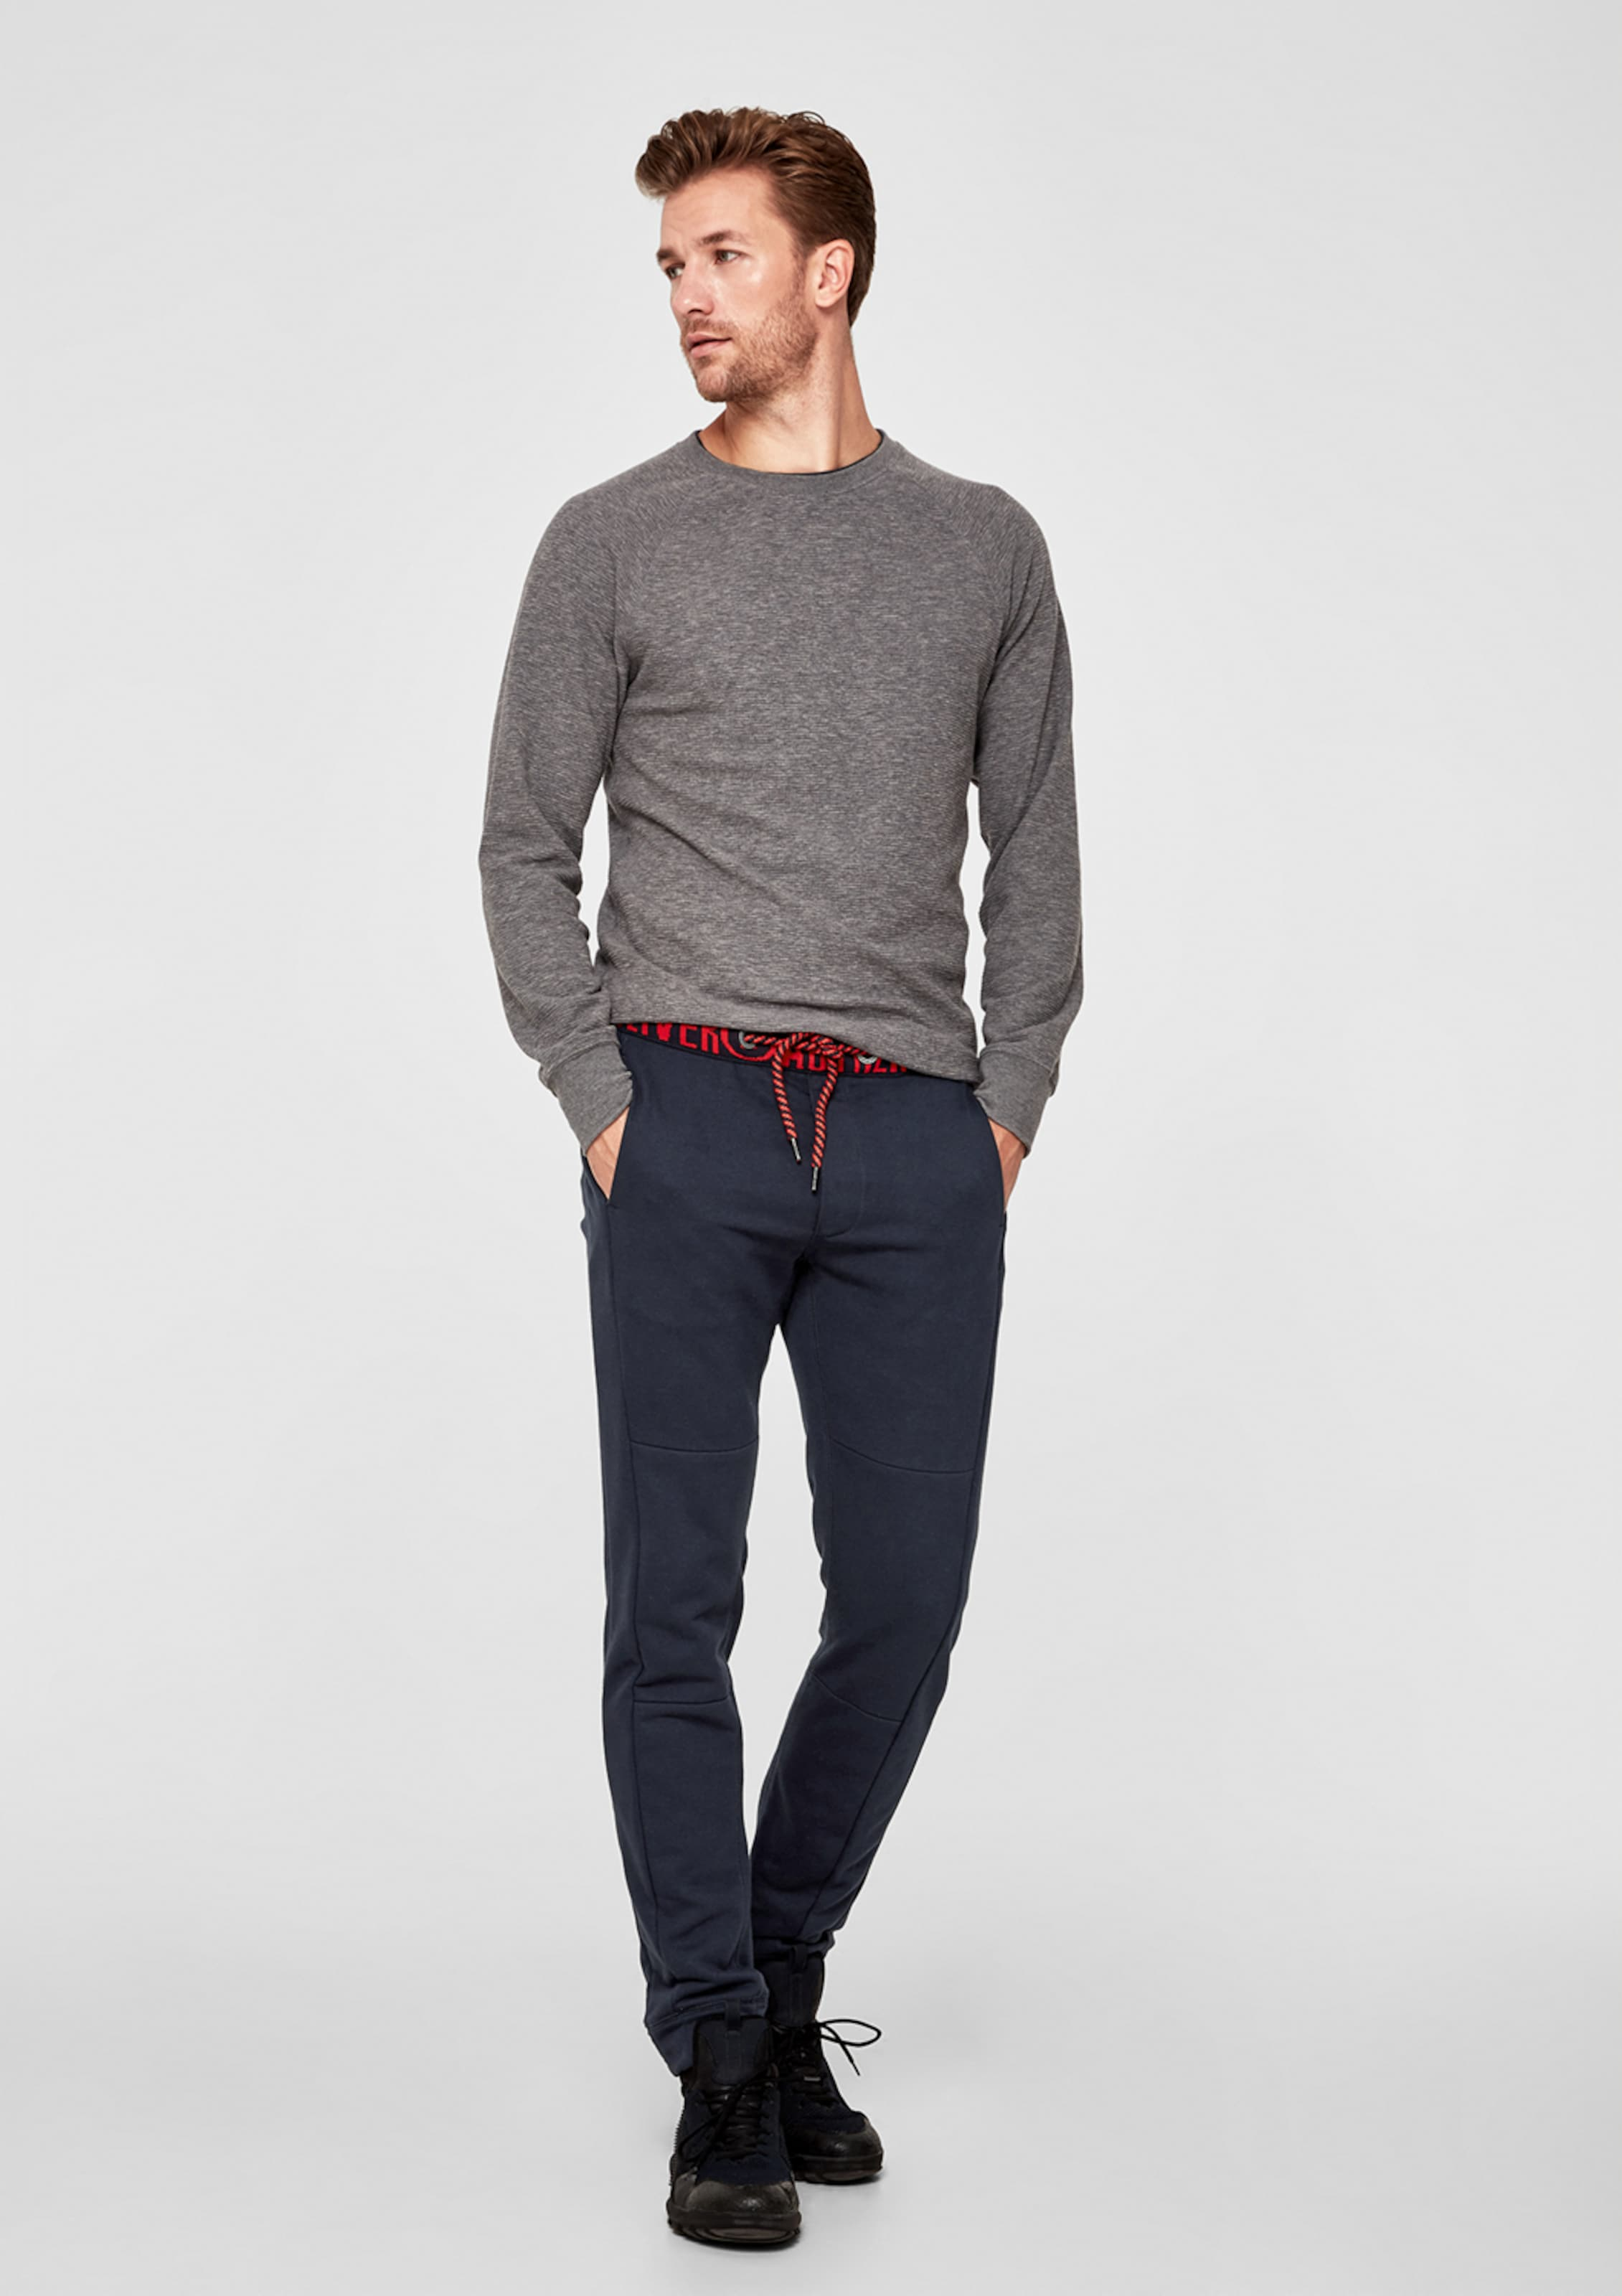 Red Label oliver NachtblauHellrot S Sweatpants In LVqpSUGzM